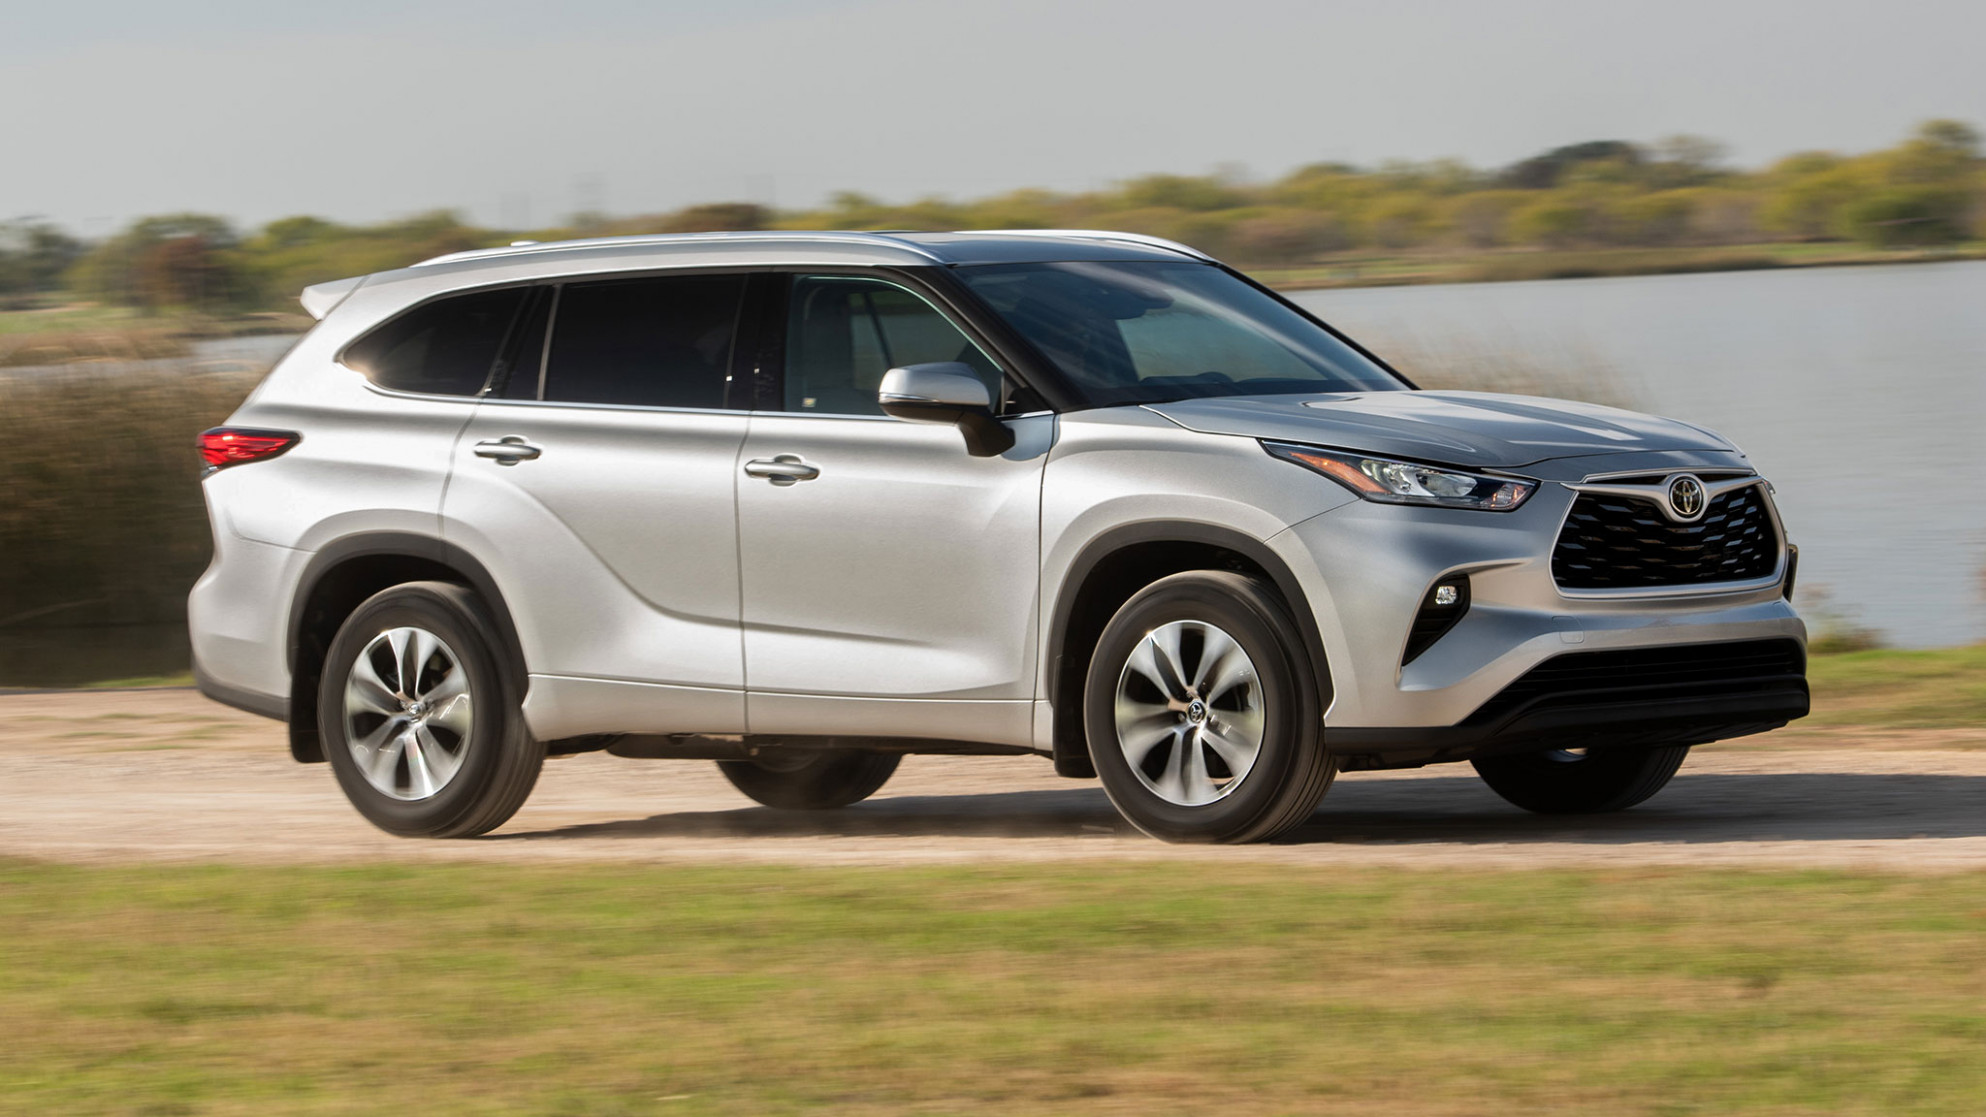 8 Toyota Highlander Starting Price Rises $8,8 to $8,780 - 2020 toyota highlander limited platinum